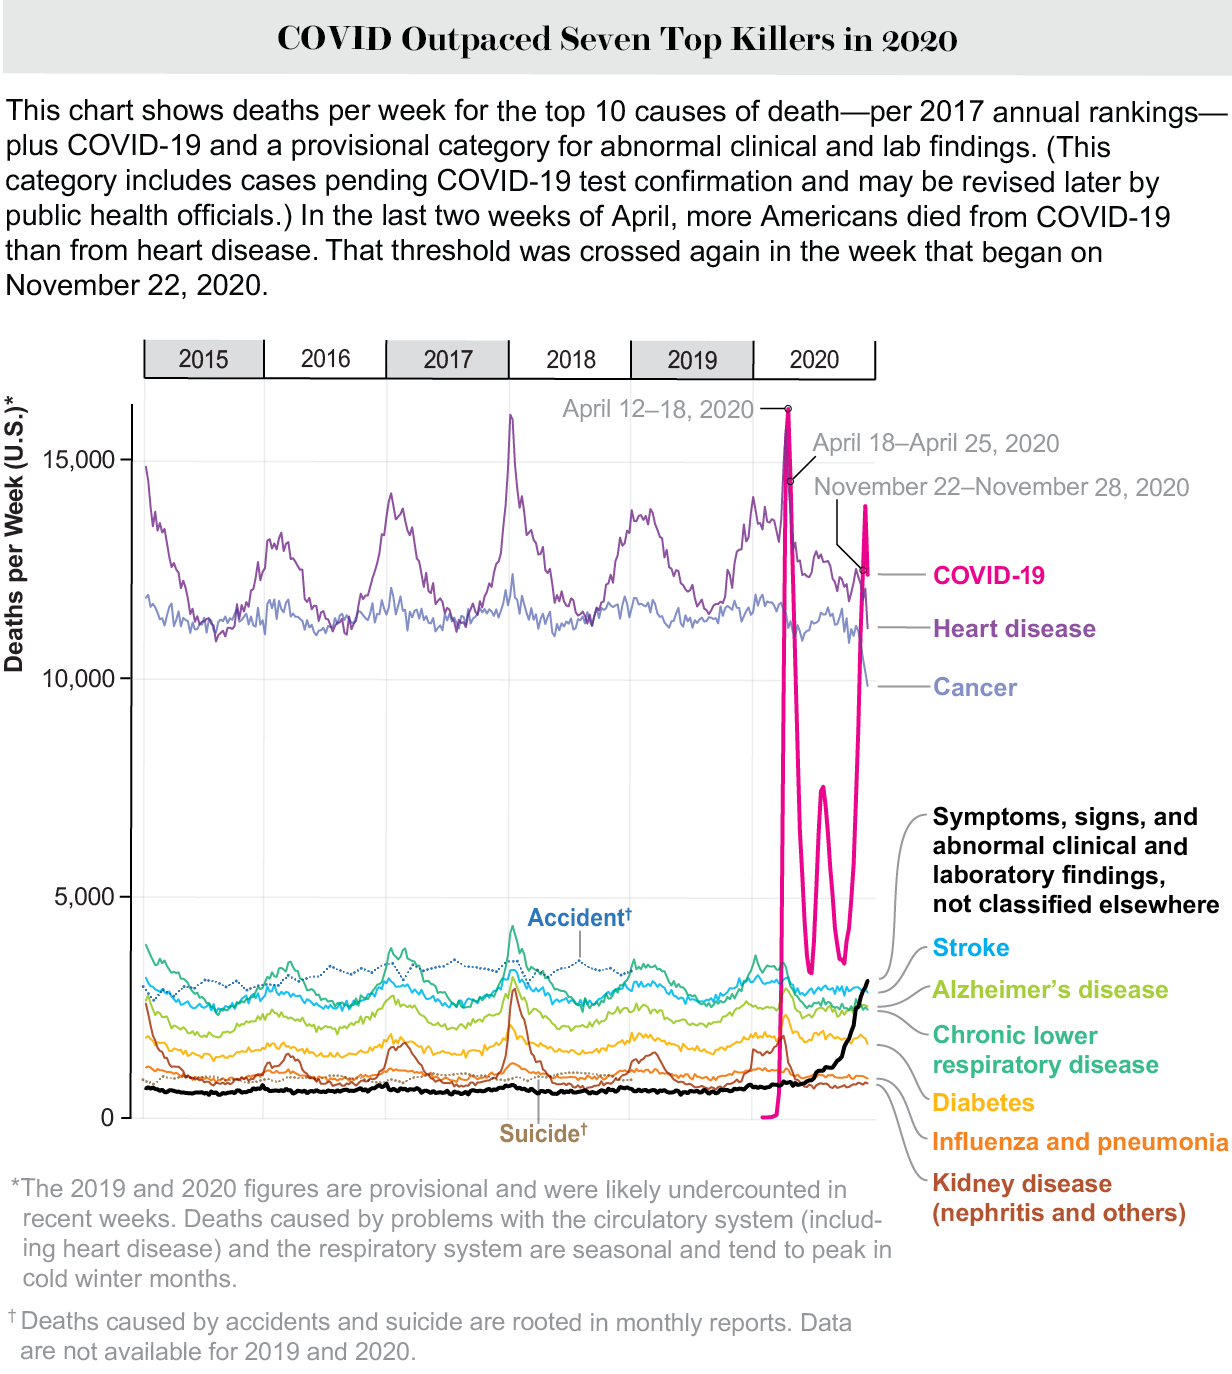 Weekly deaths by cause of death. In late November 2020 more Americans died of COVID than any other single cause.